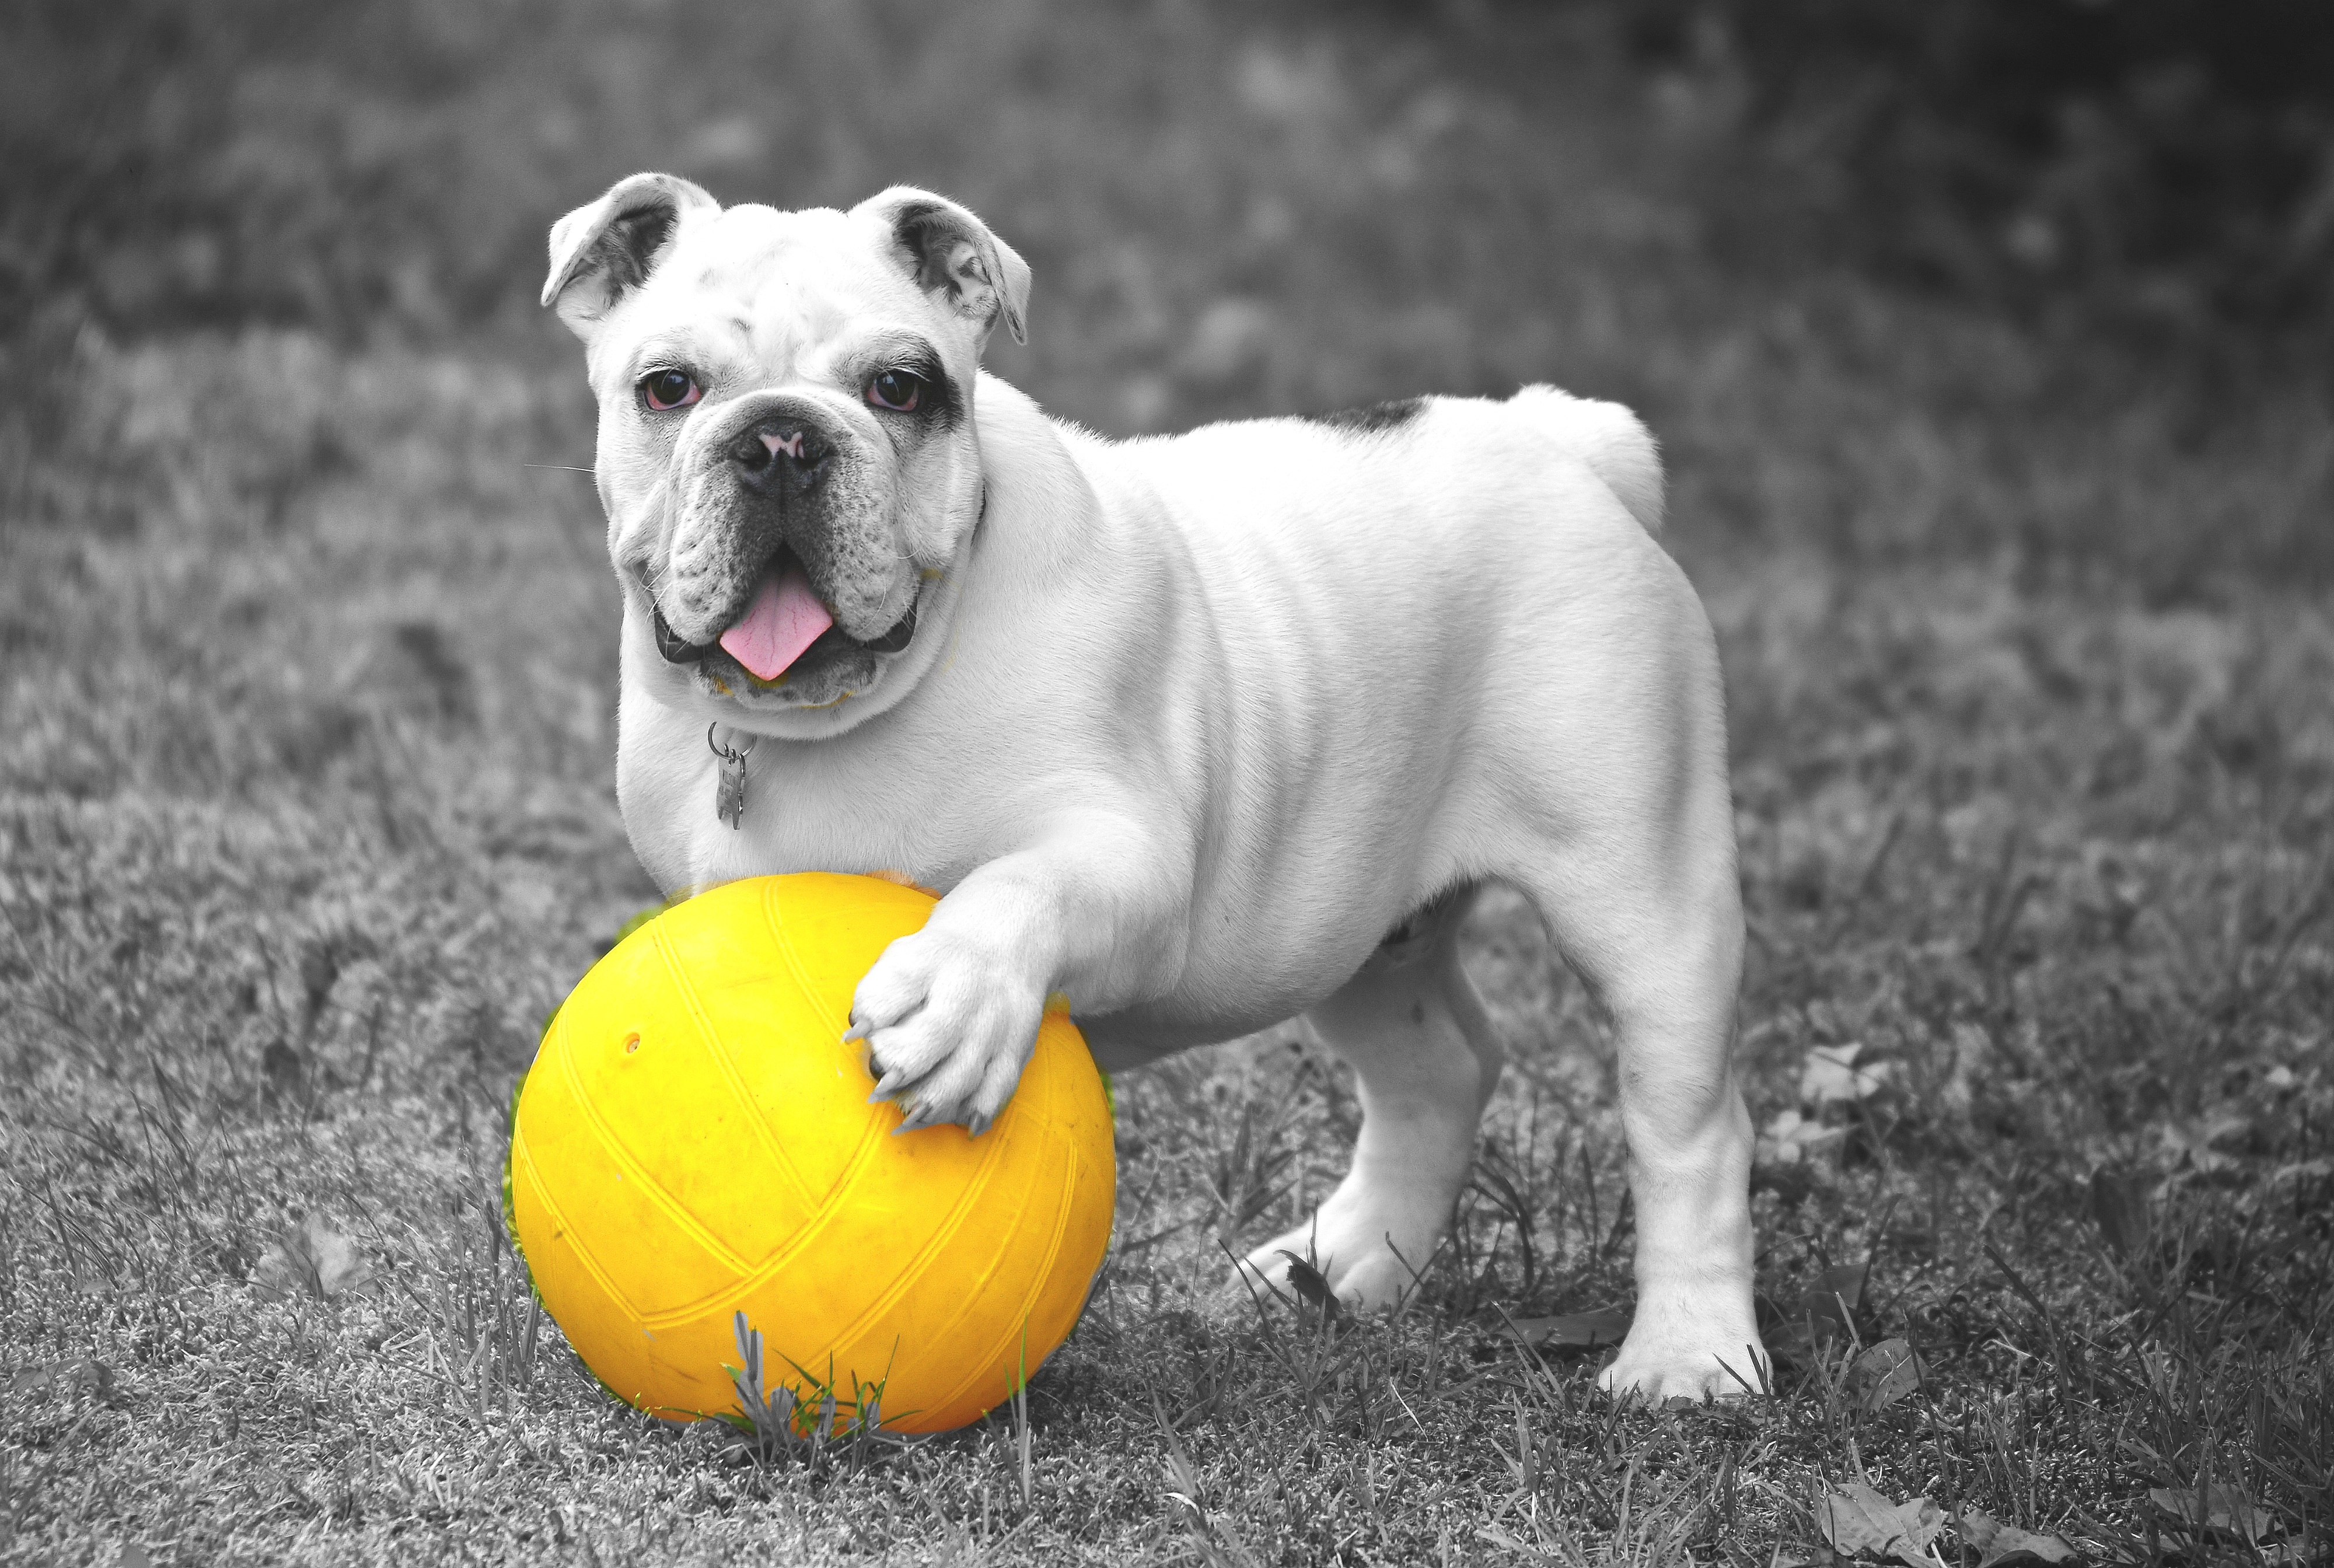 121580 download wallpaper Animals, Bulldog, Dog, Ball, Playful screensavers and pictures for free